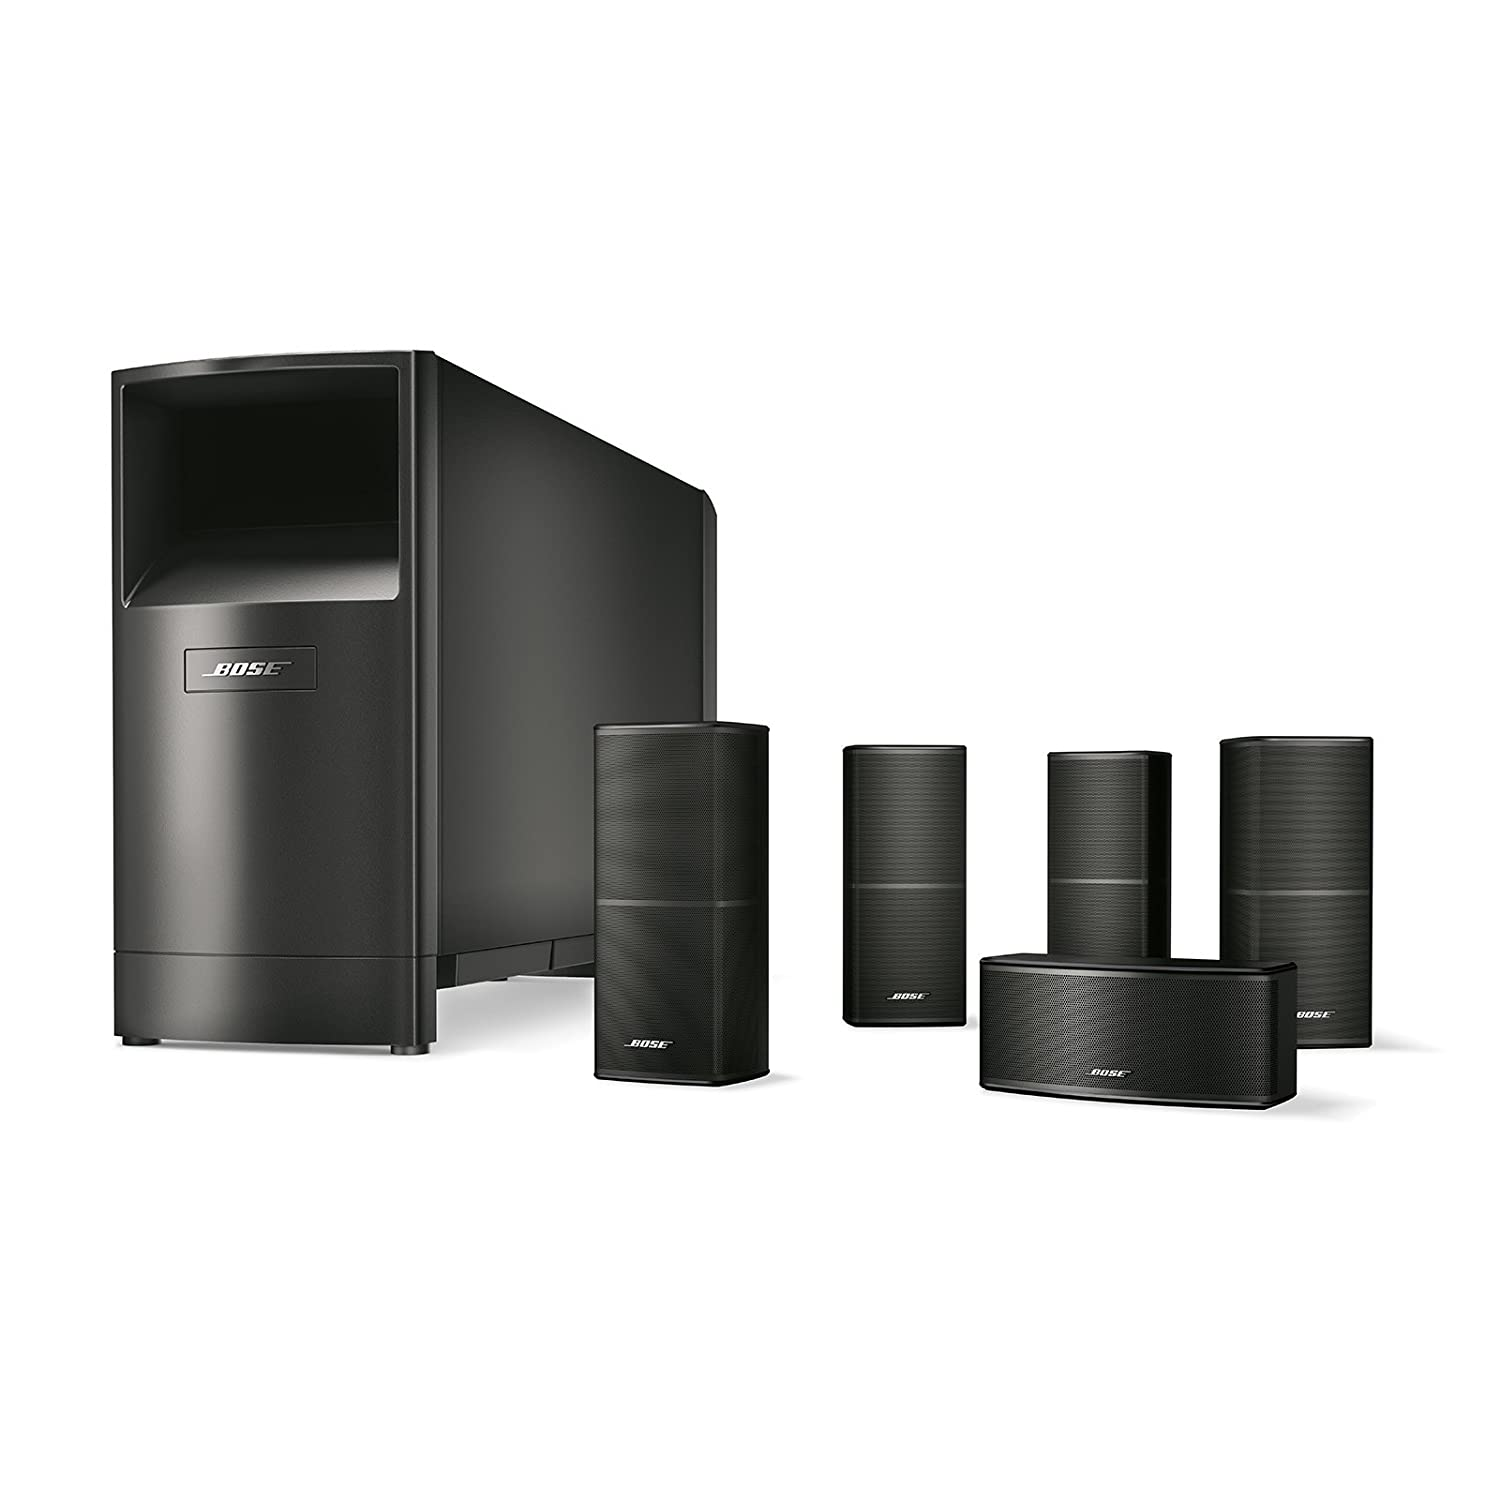 Bose Acoustimass 10 Series V Home Theater Speaker System, Black - 720962-1100